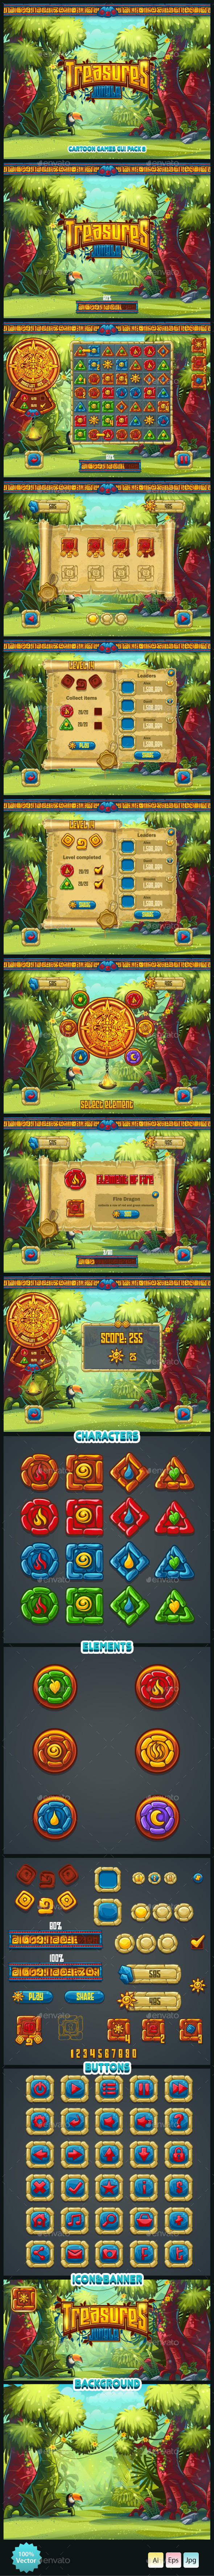 Jungle Treasures GUI. - User Interfaces Game Assets